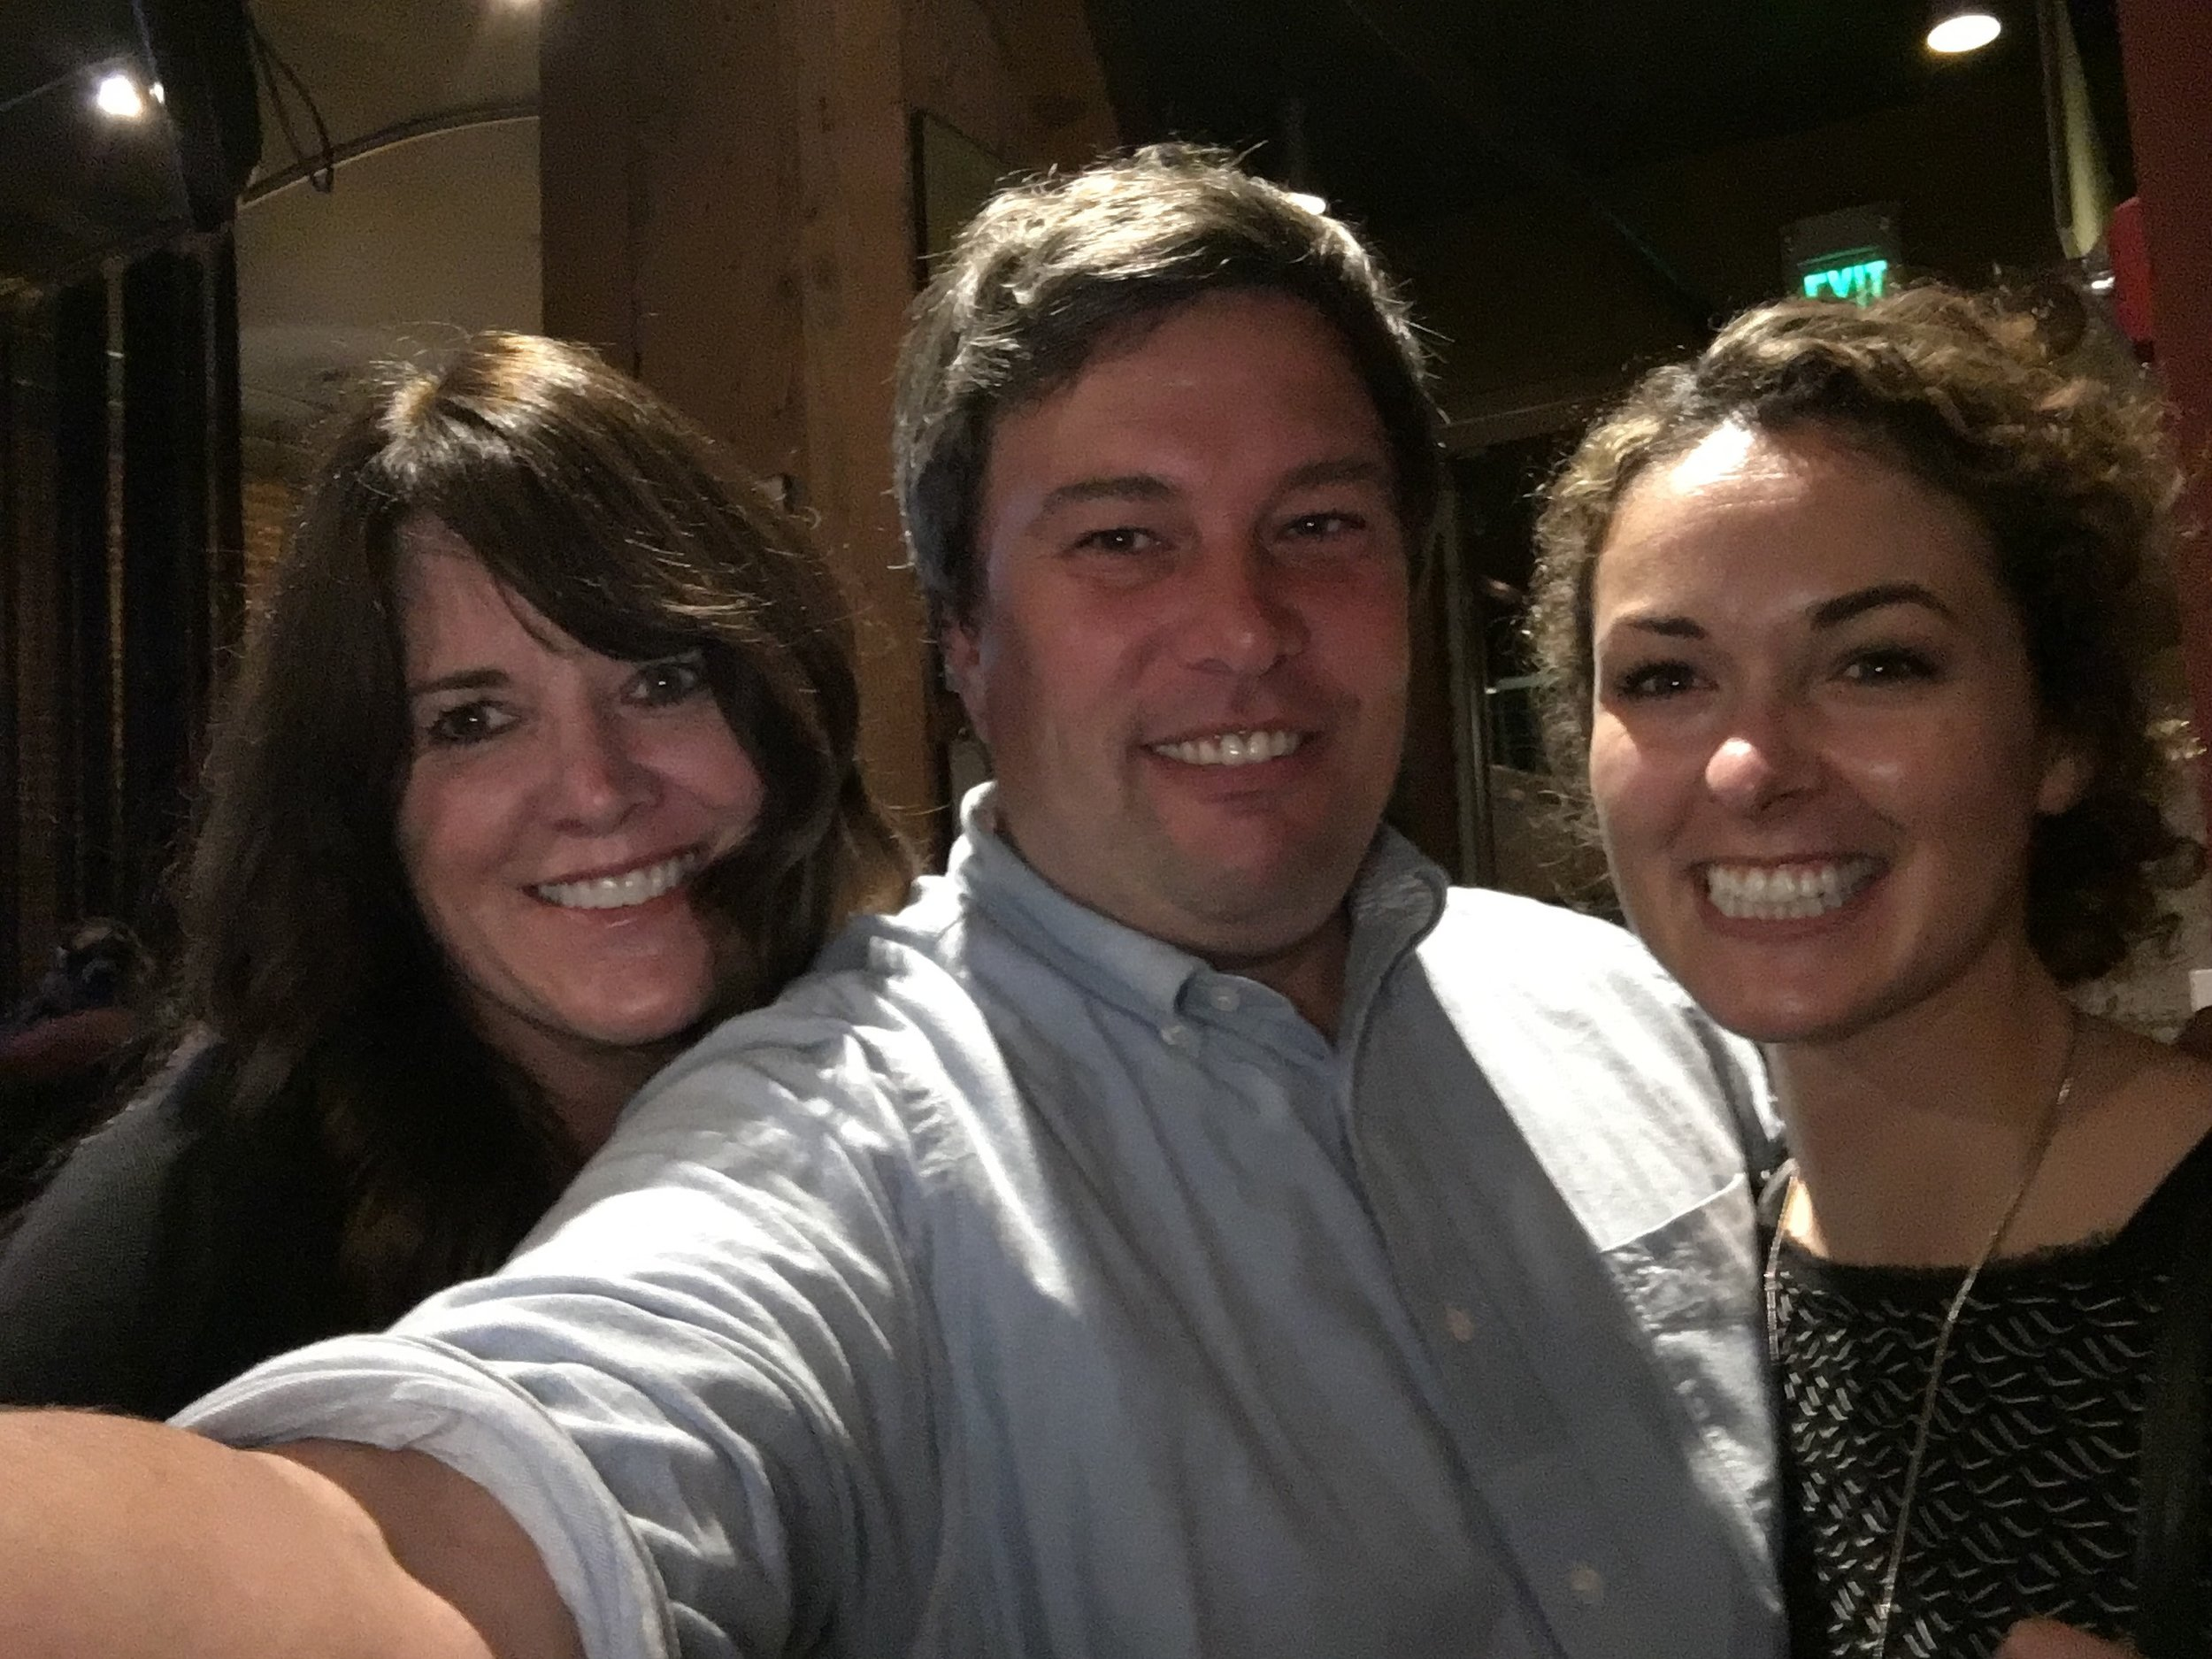 Stacy from Wink (L), Robert (that's me!) from Higher Ground, and Kristi from Kiva Confections, pose for a post-event selfie.